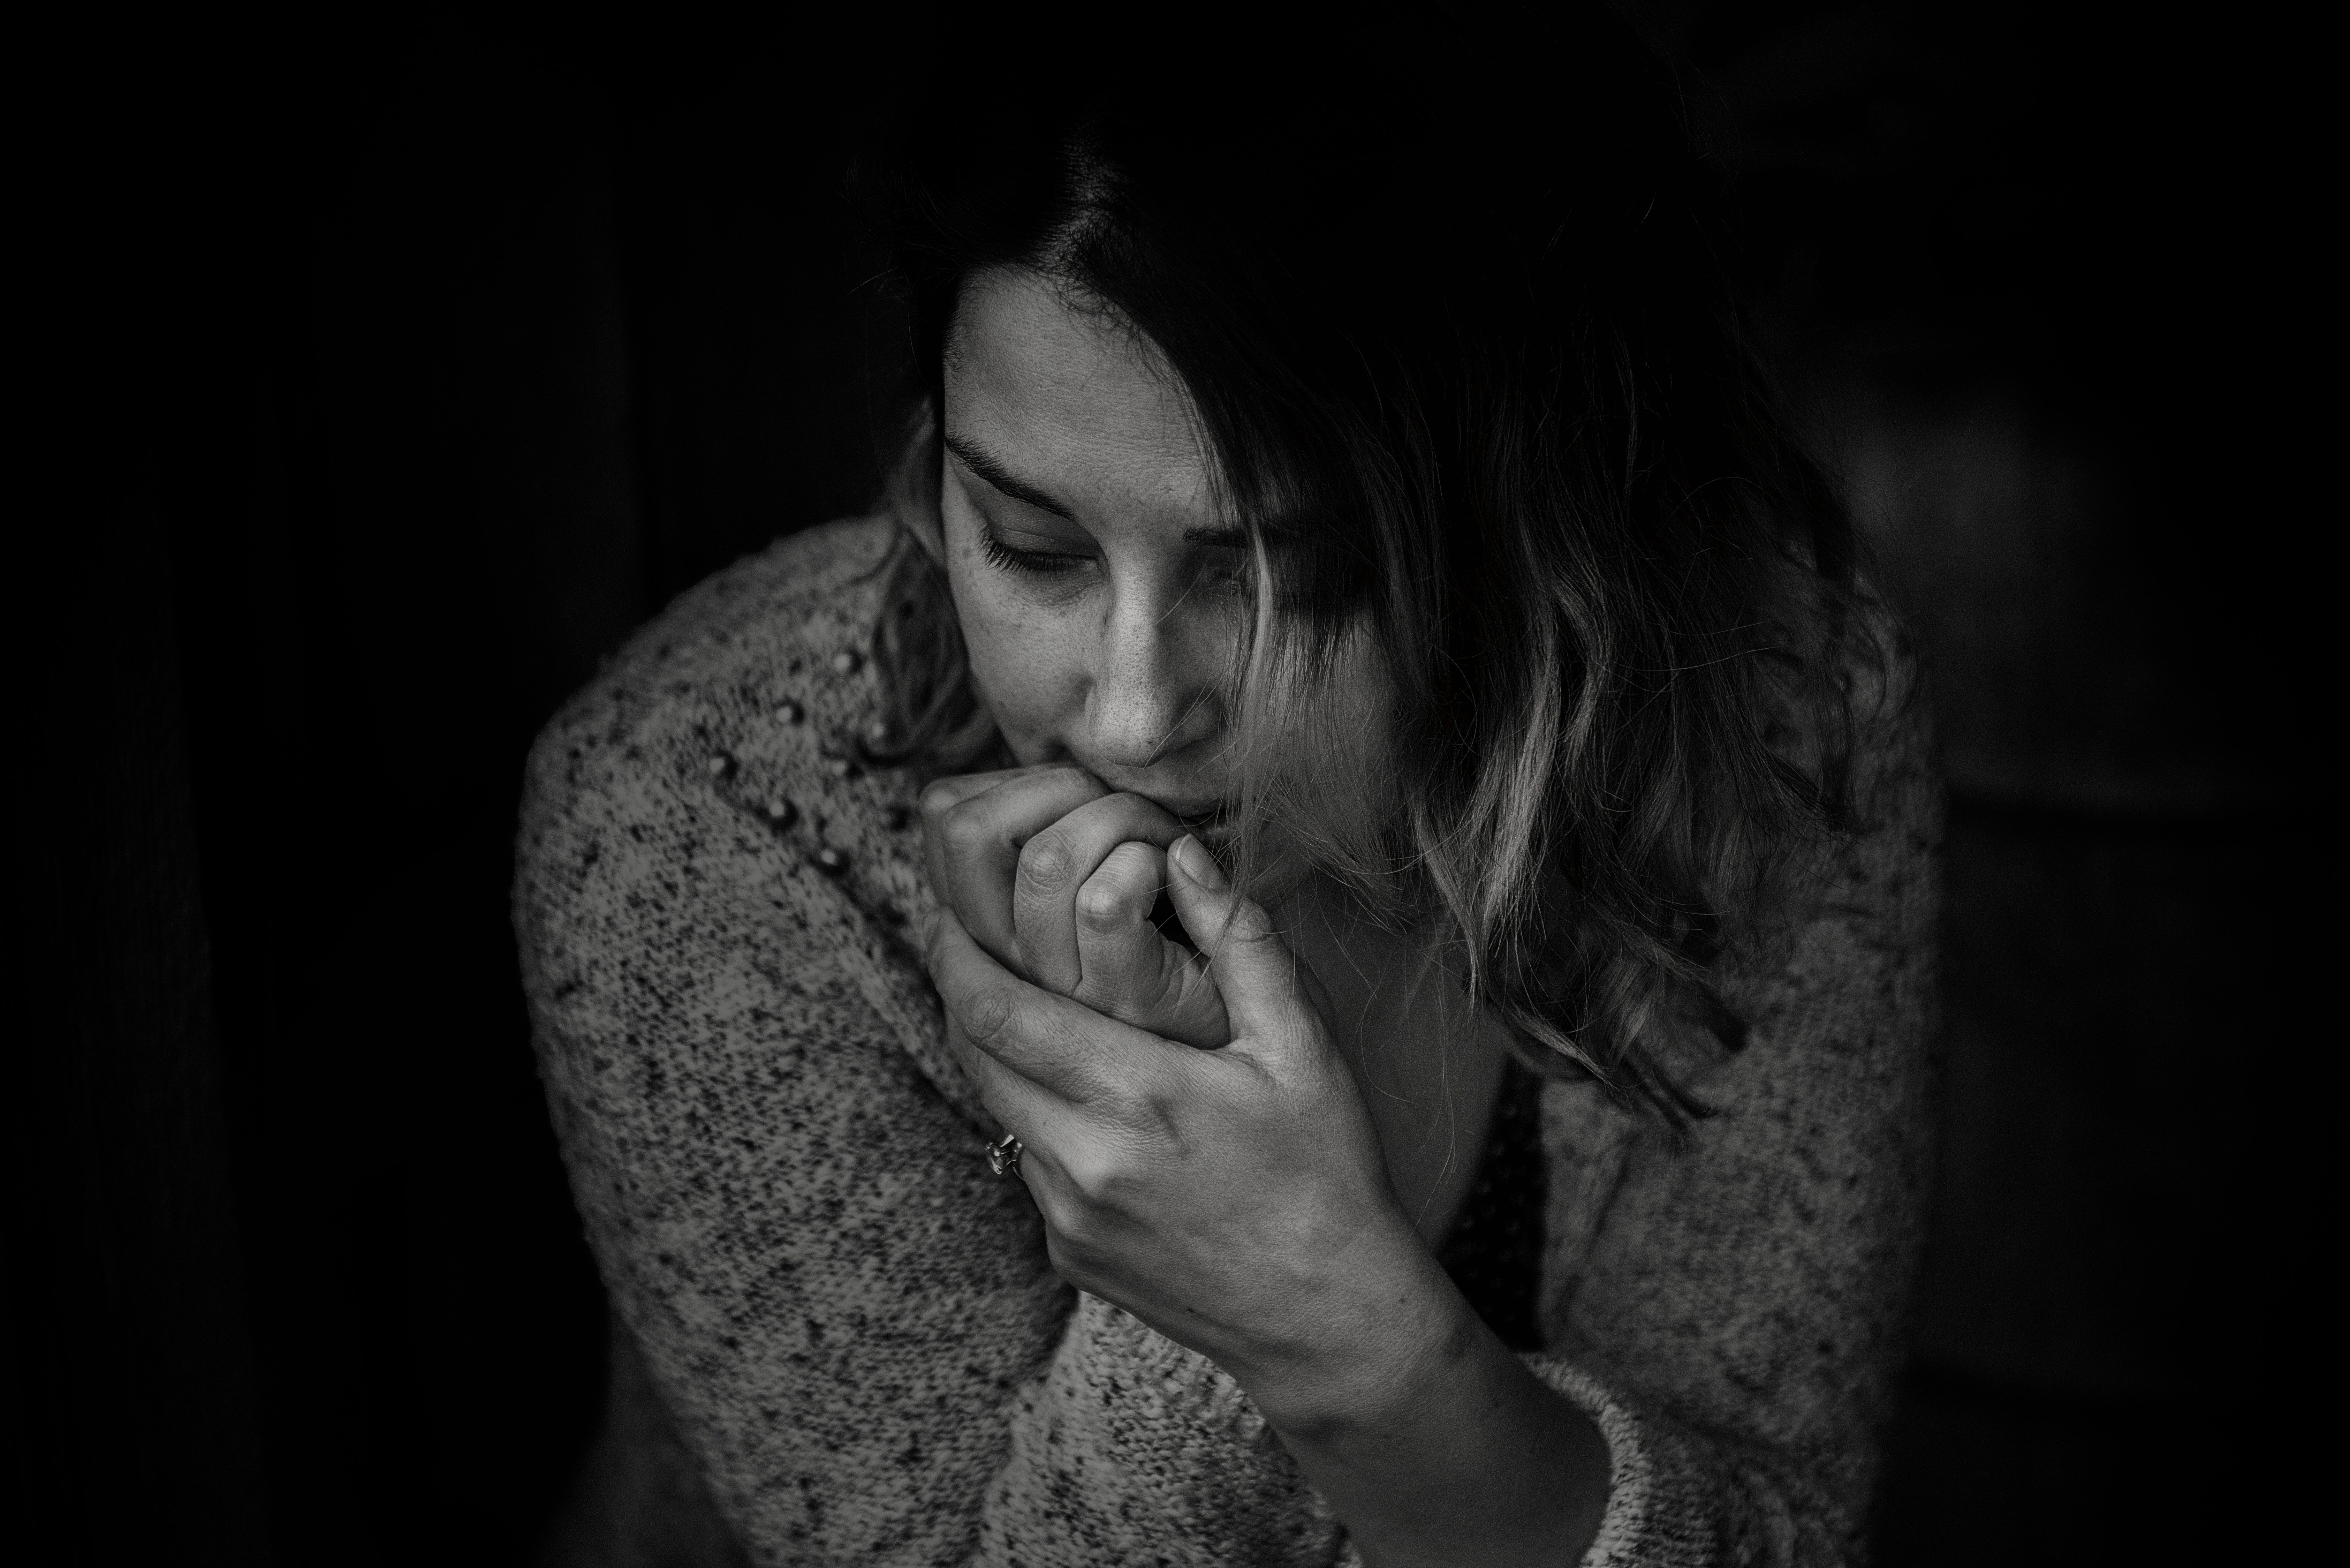 A woman with OCD biting nails